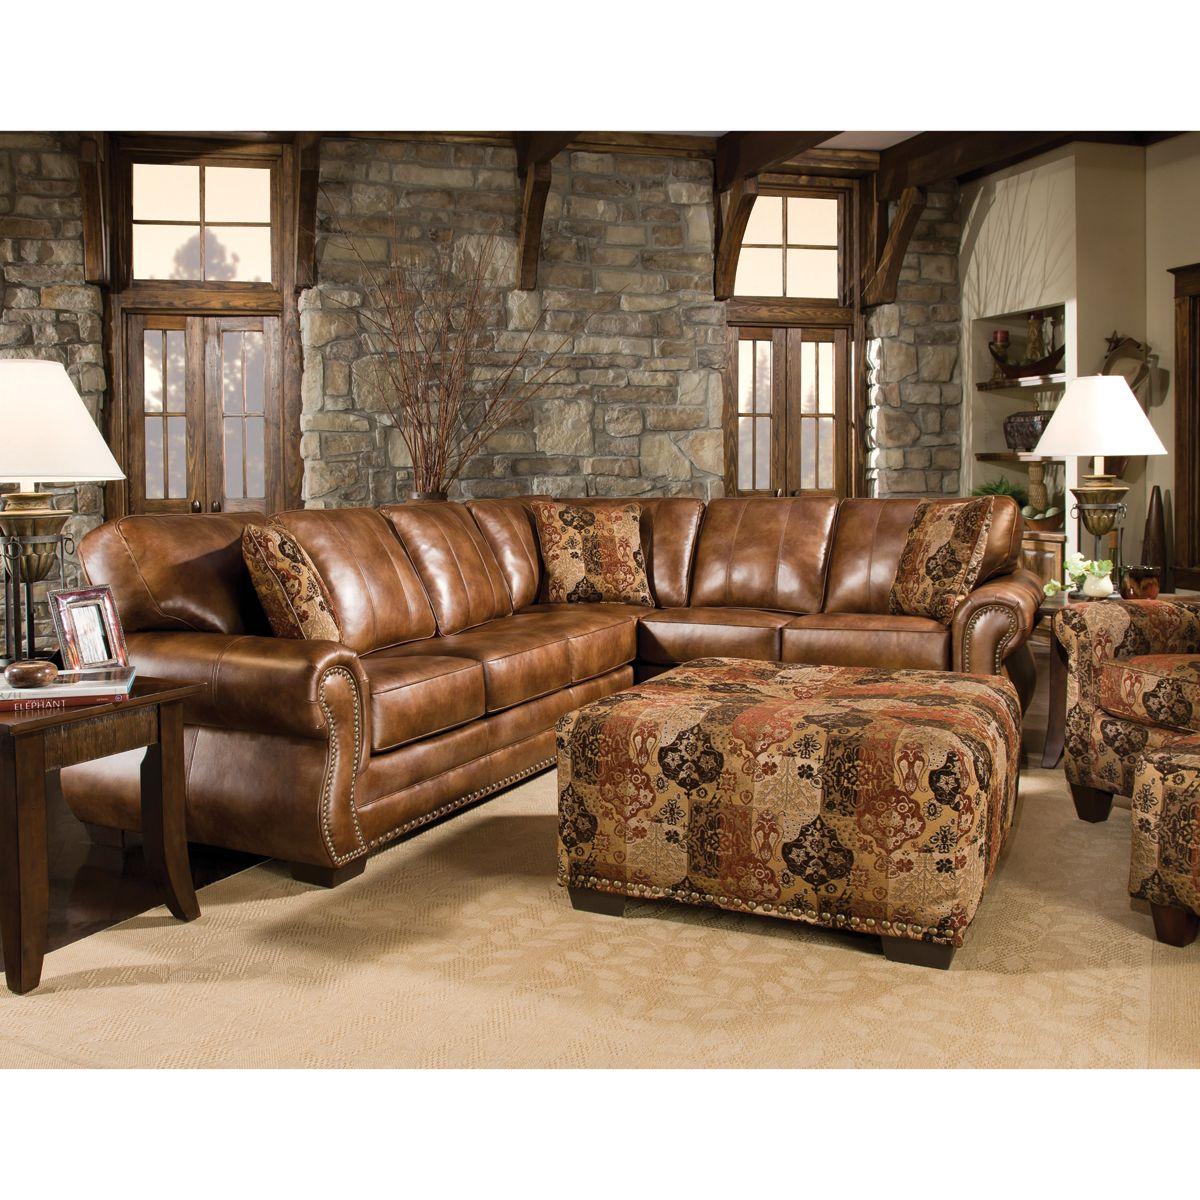 Saddle Brown 2 Piece Sectional Leather Living Room Furniture Sectional Sofas Living Room Living Room Leather